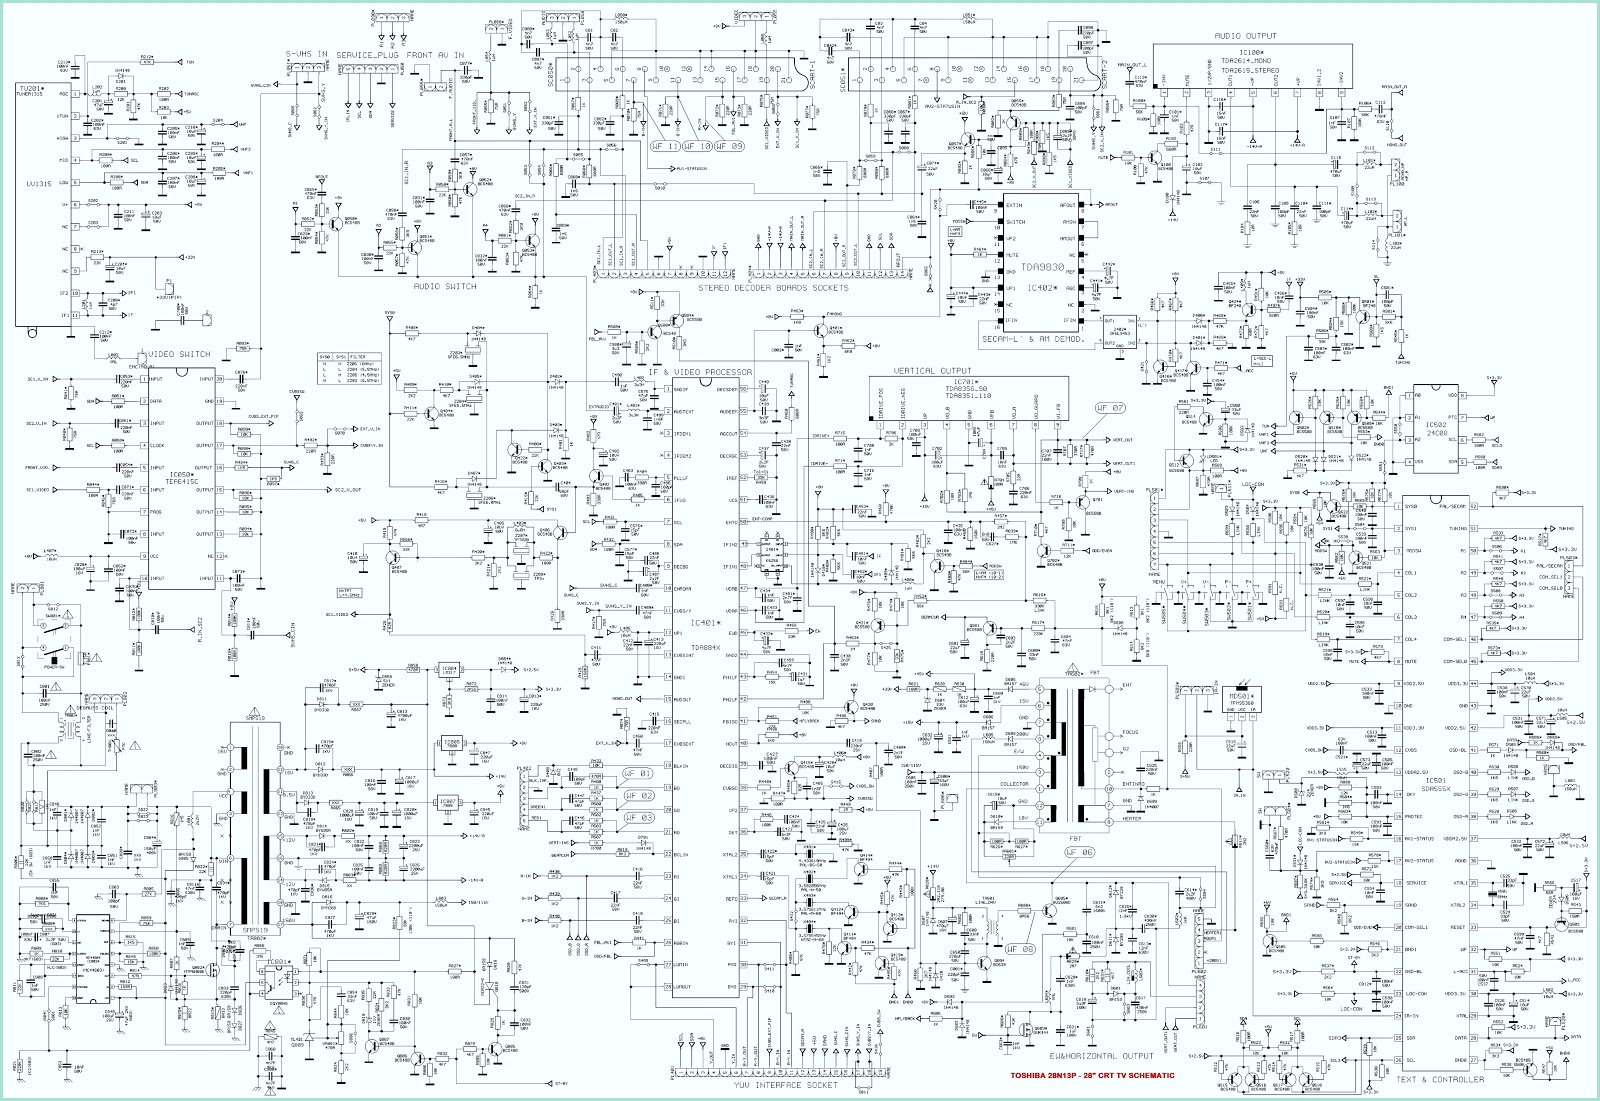 toshiba 28n13p 28 inch crt tv circuit diagram schematic diagrams rh schematicscom blogspot com AM Radio Circuit Diagram RF Transmitter Circuit Diagram